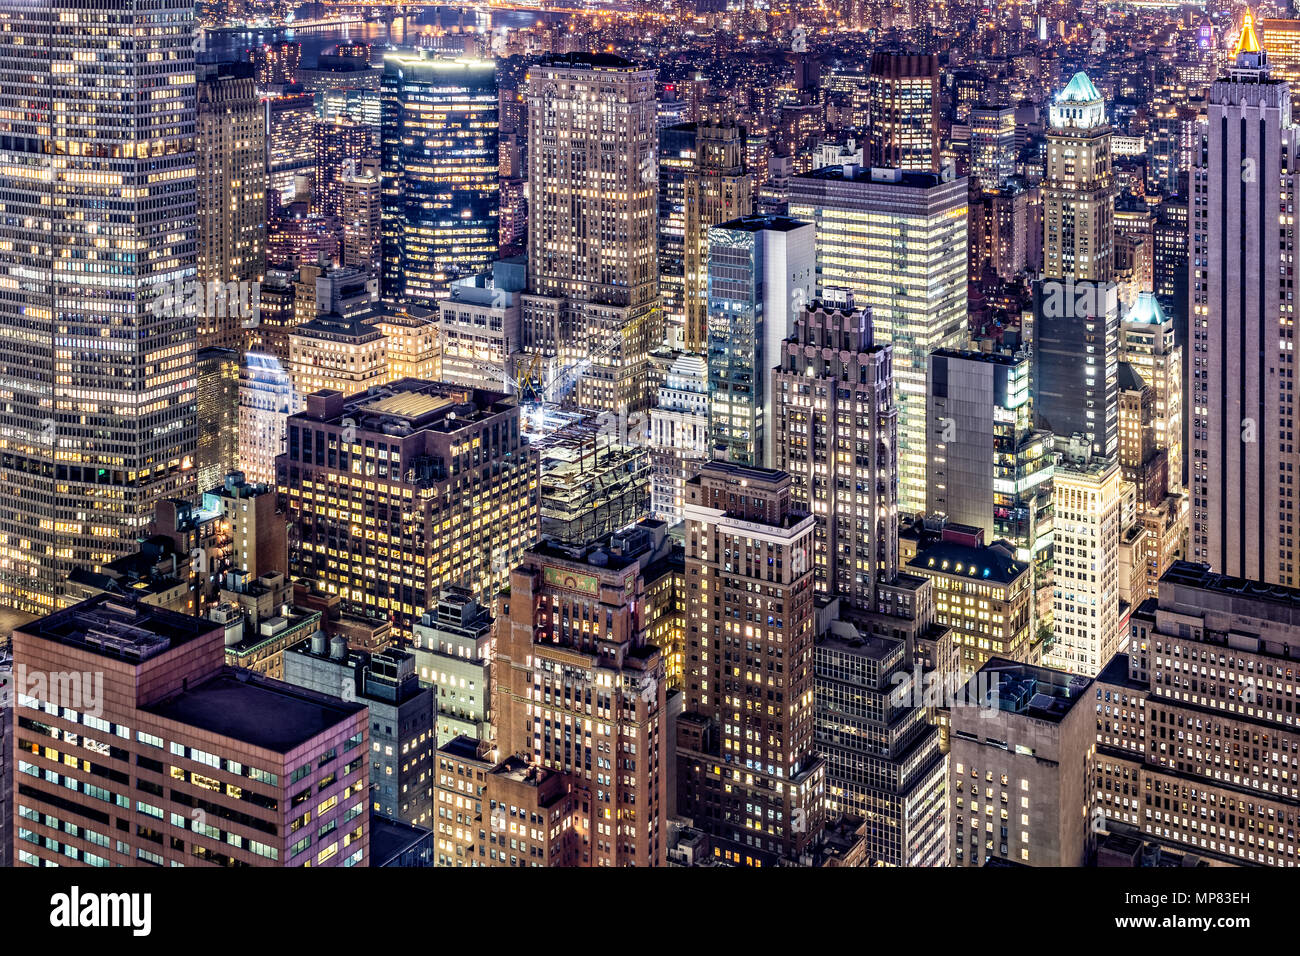 Aerial view of Manhattan skyscrapers by night - Stock Image